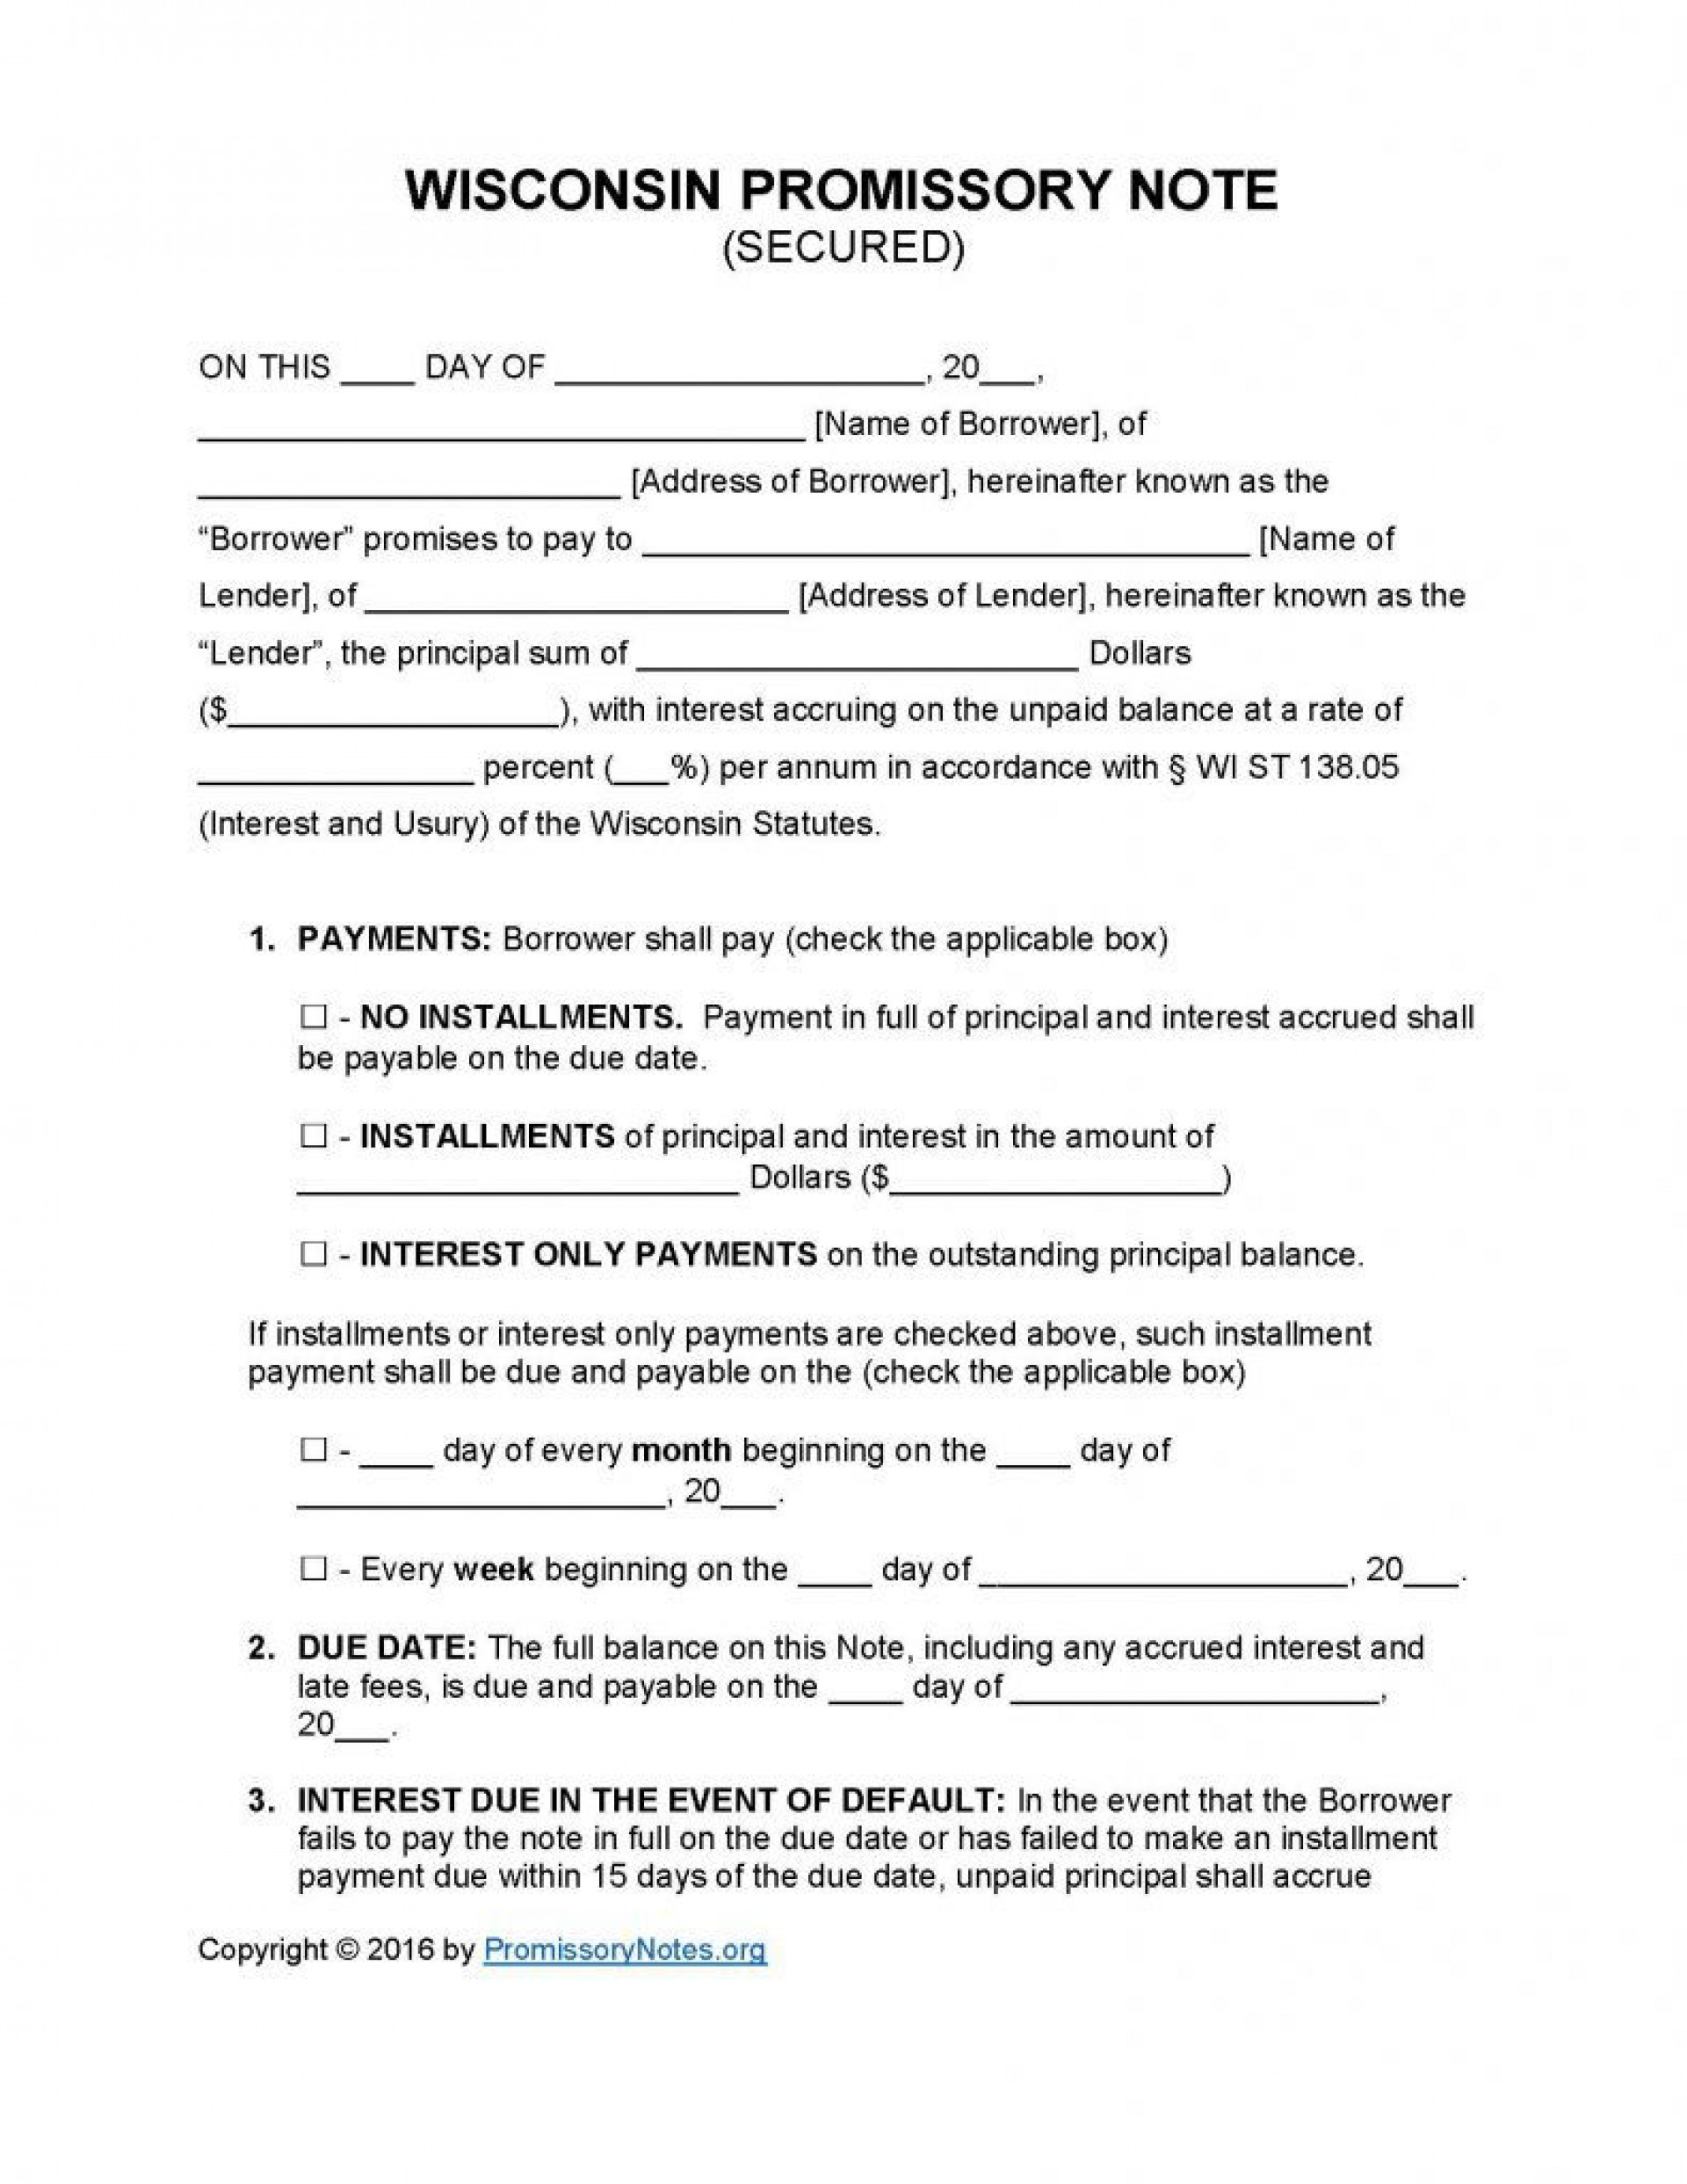 009 Top Template For Promissory Note Design  Free Personal Loan Uk1920